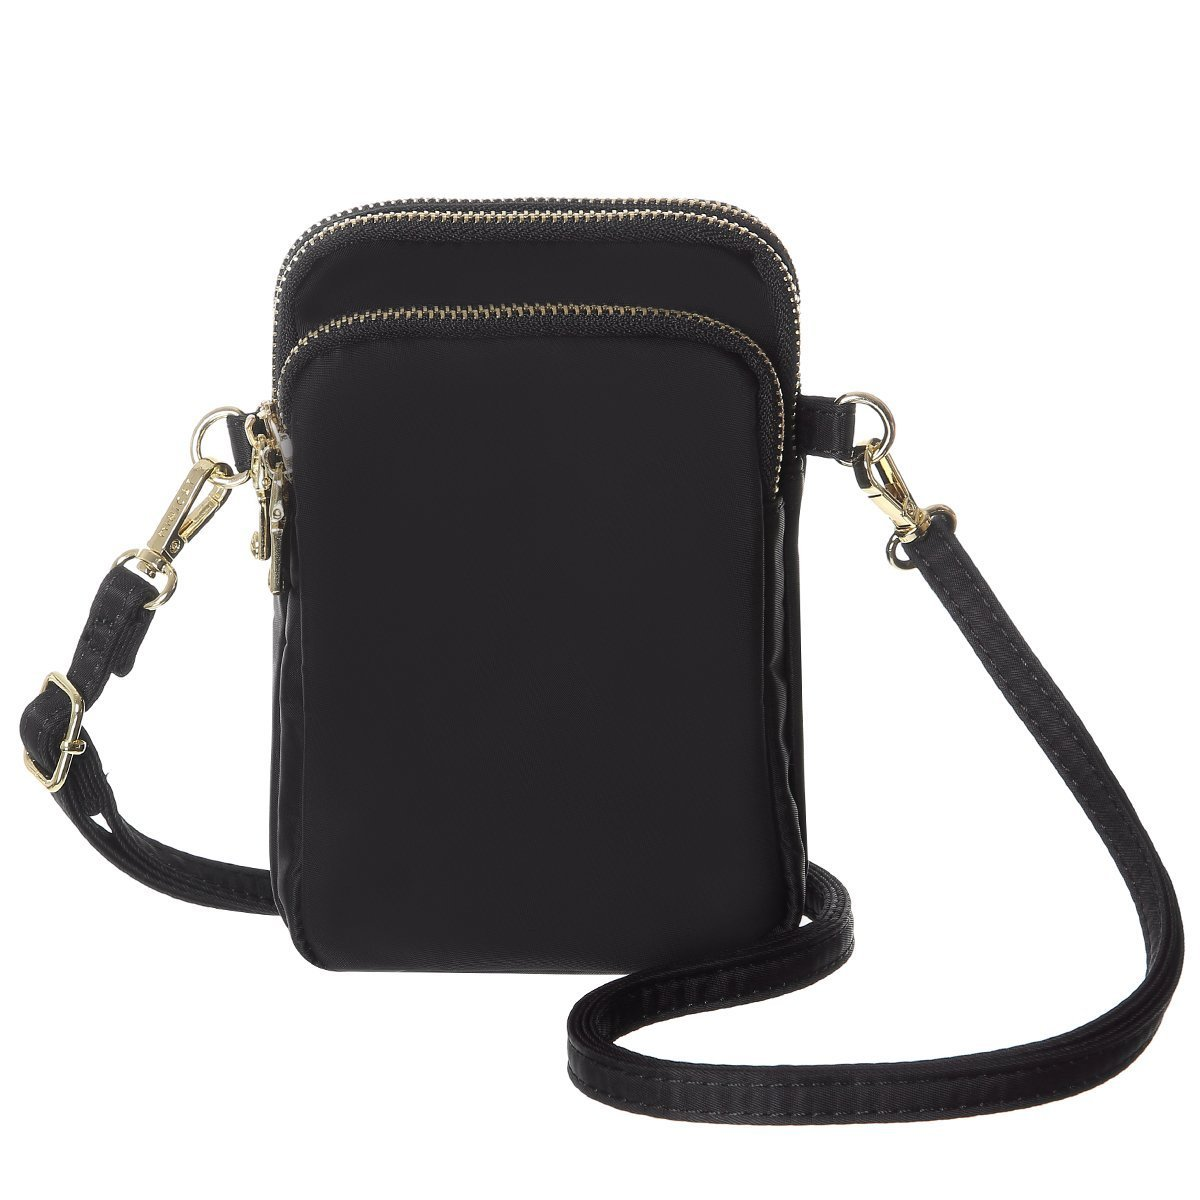 MINICAT Nylon Small Crossbody Bags Cell Phone Purse Smartphone Wallet For Women (Black)